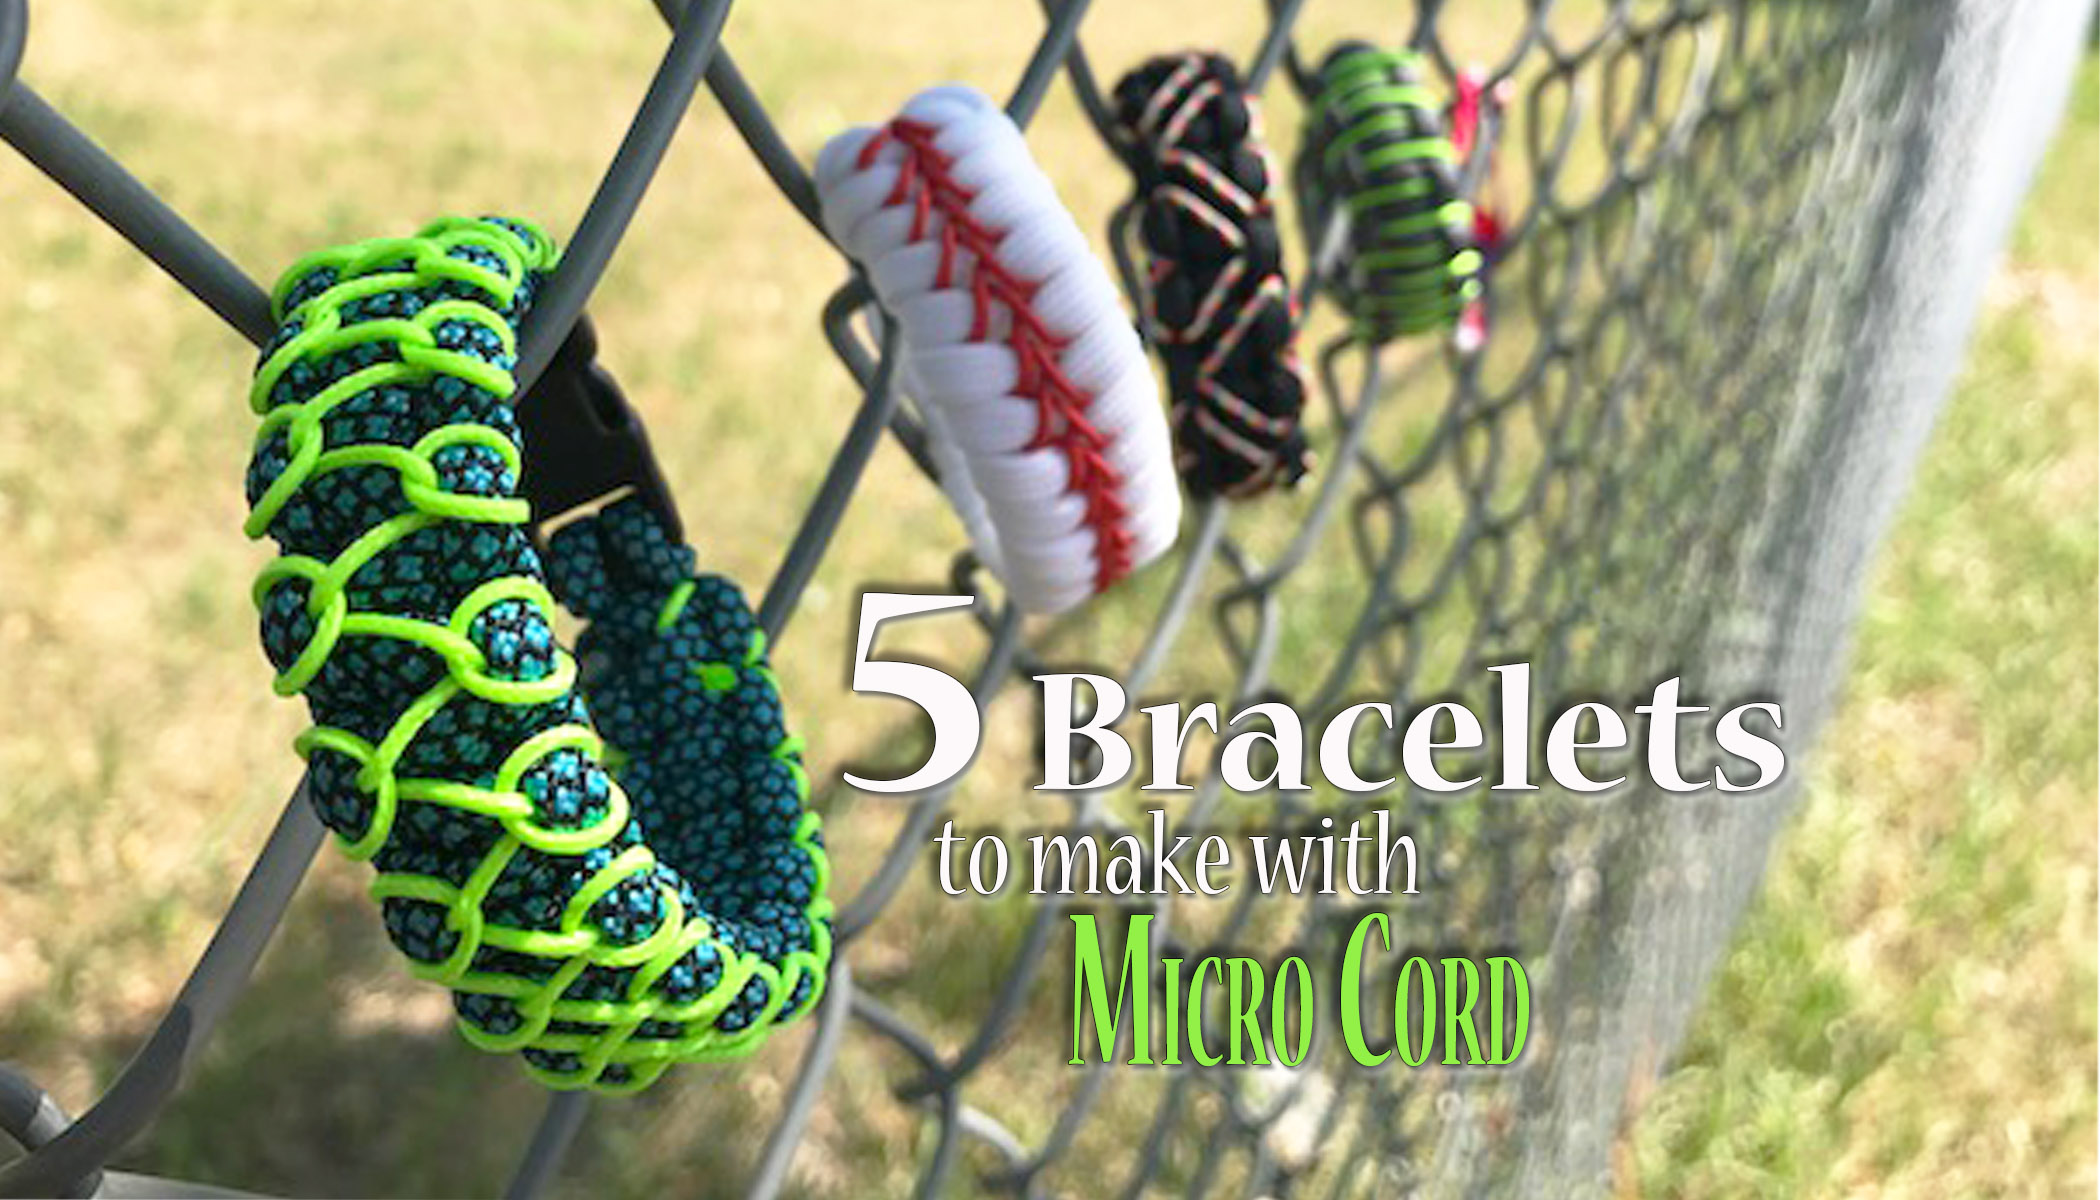 5 Bracelets to make with micro cord